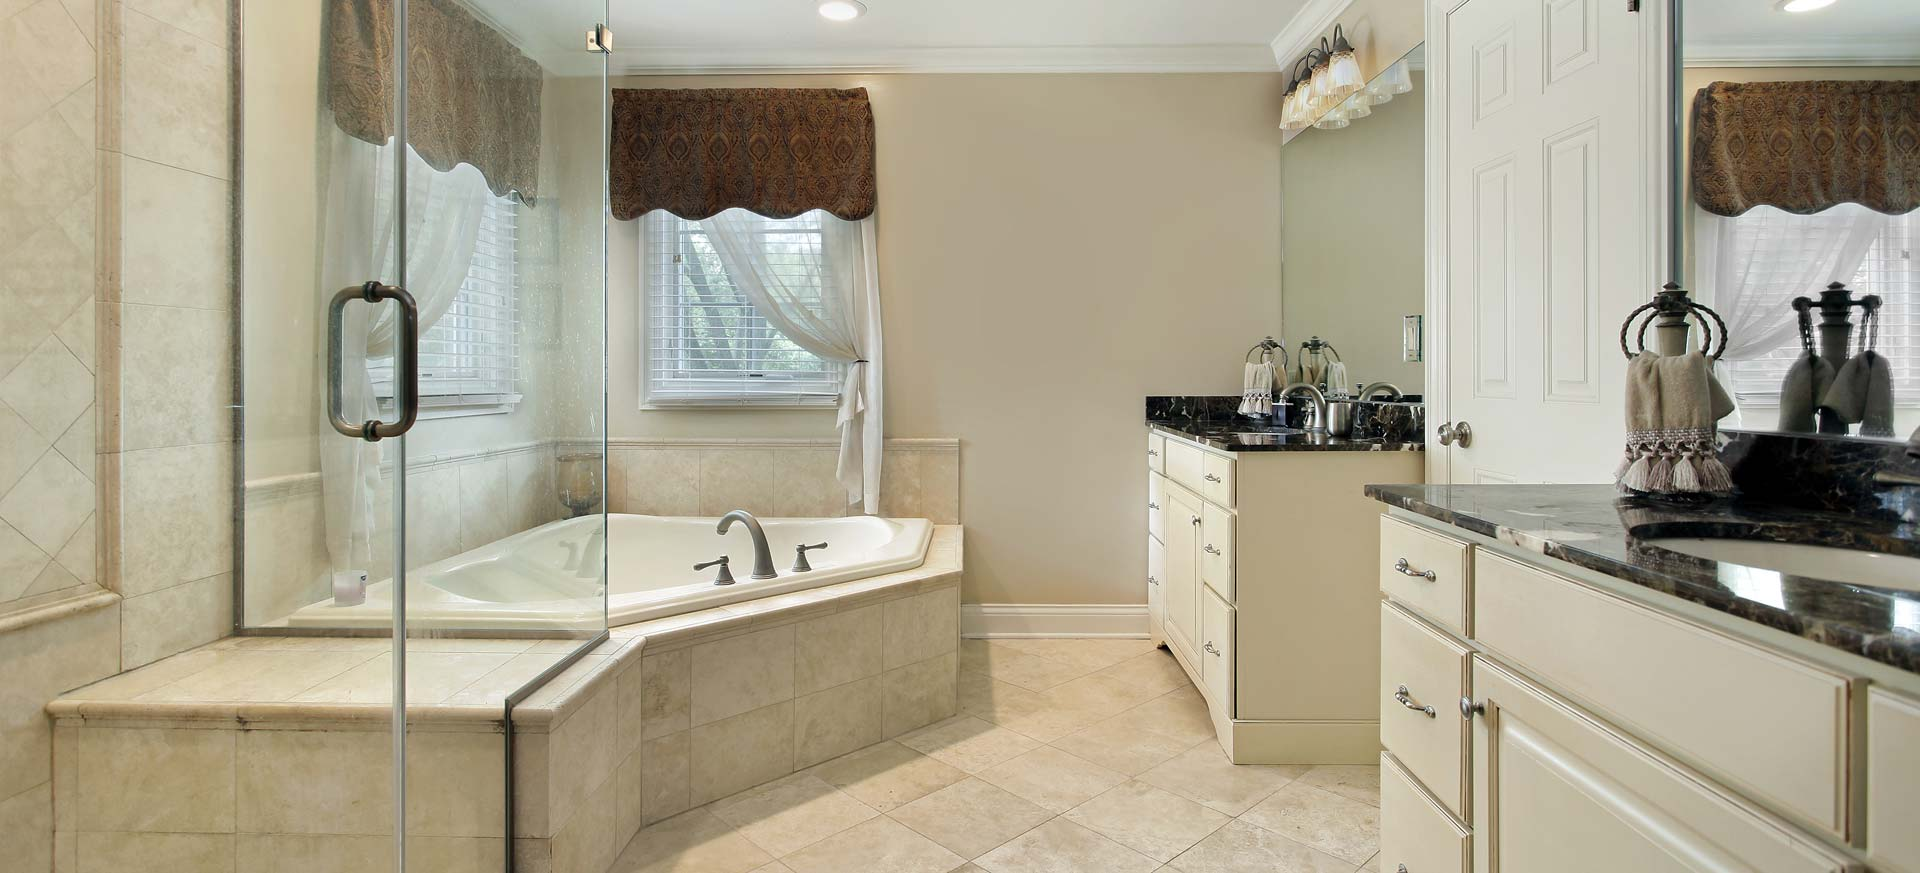 Bathroom Remodel Raleigh Nc quality one contracting | remodeling & renovations raleigh nc